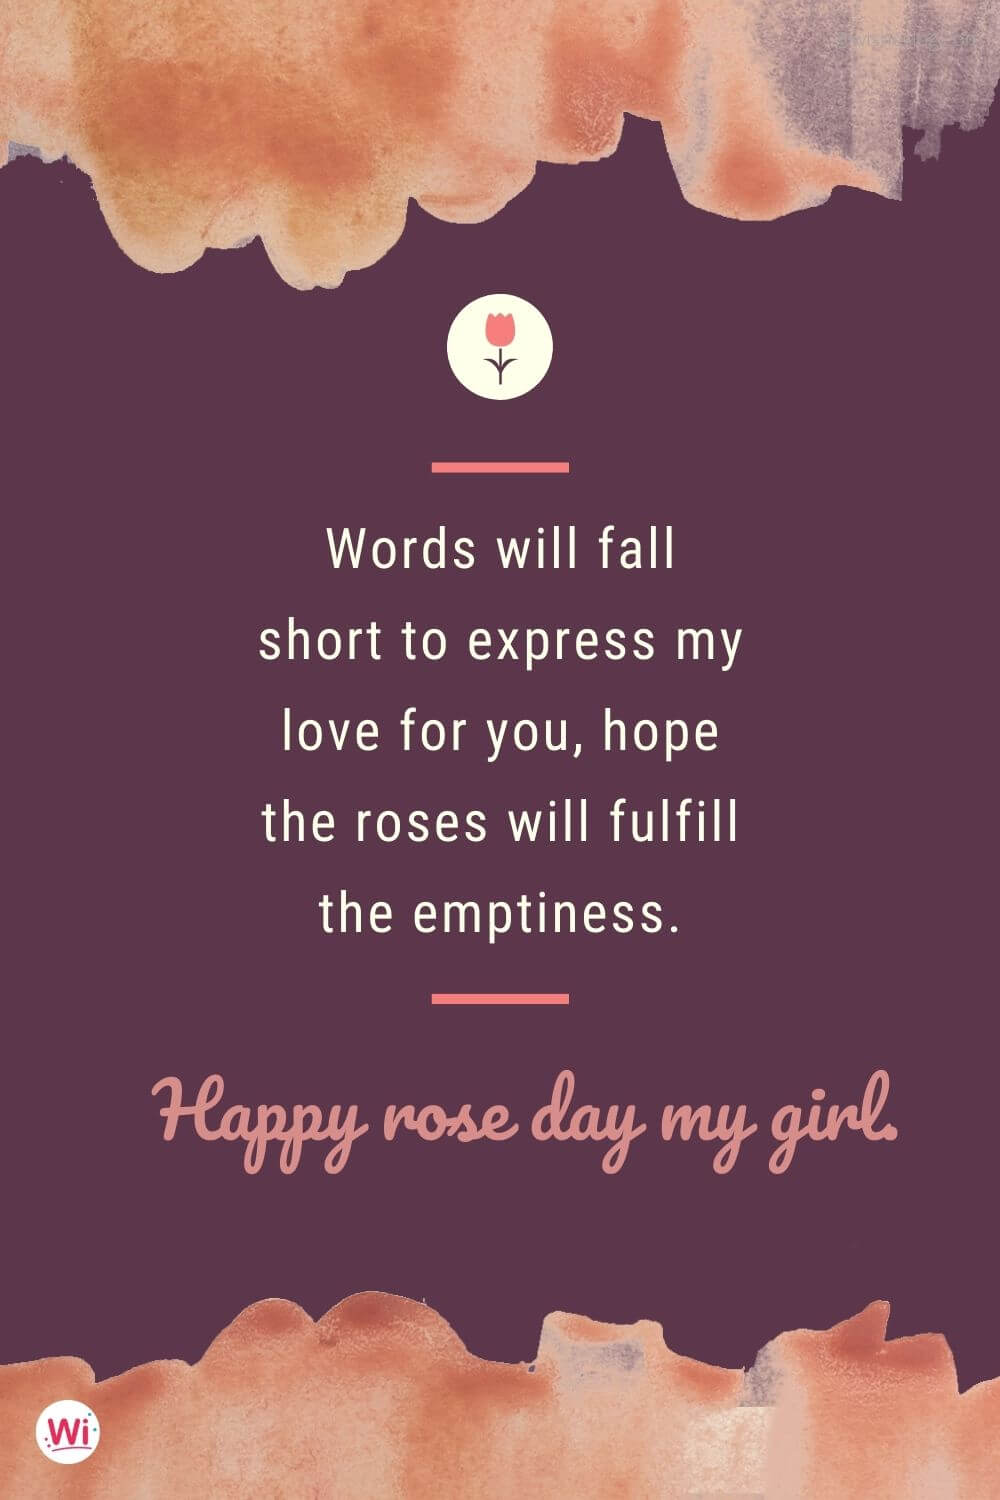 best rose day quotes for gf